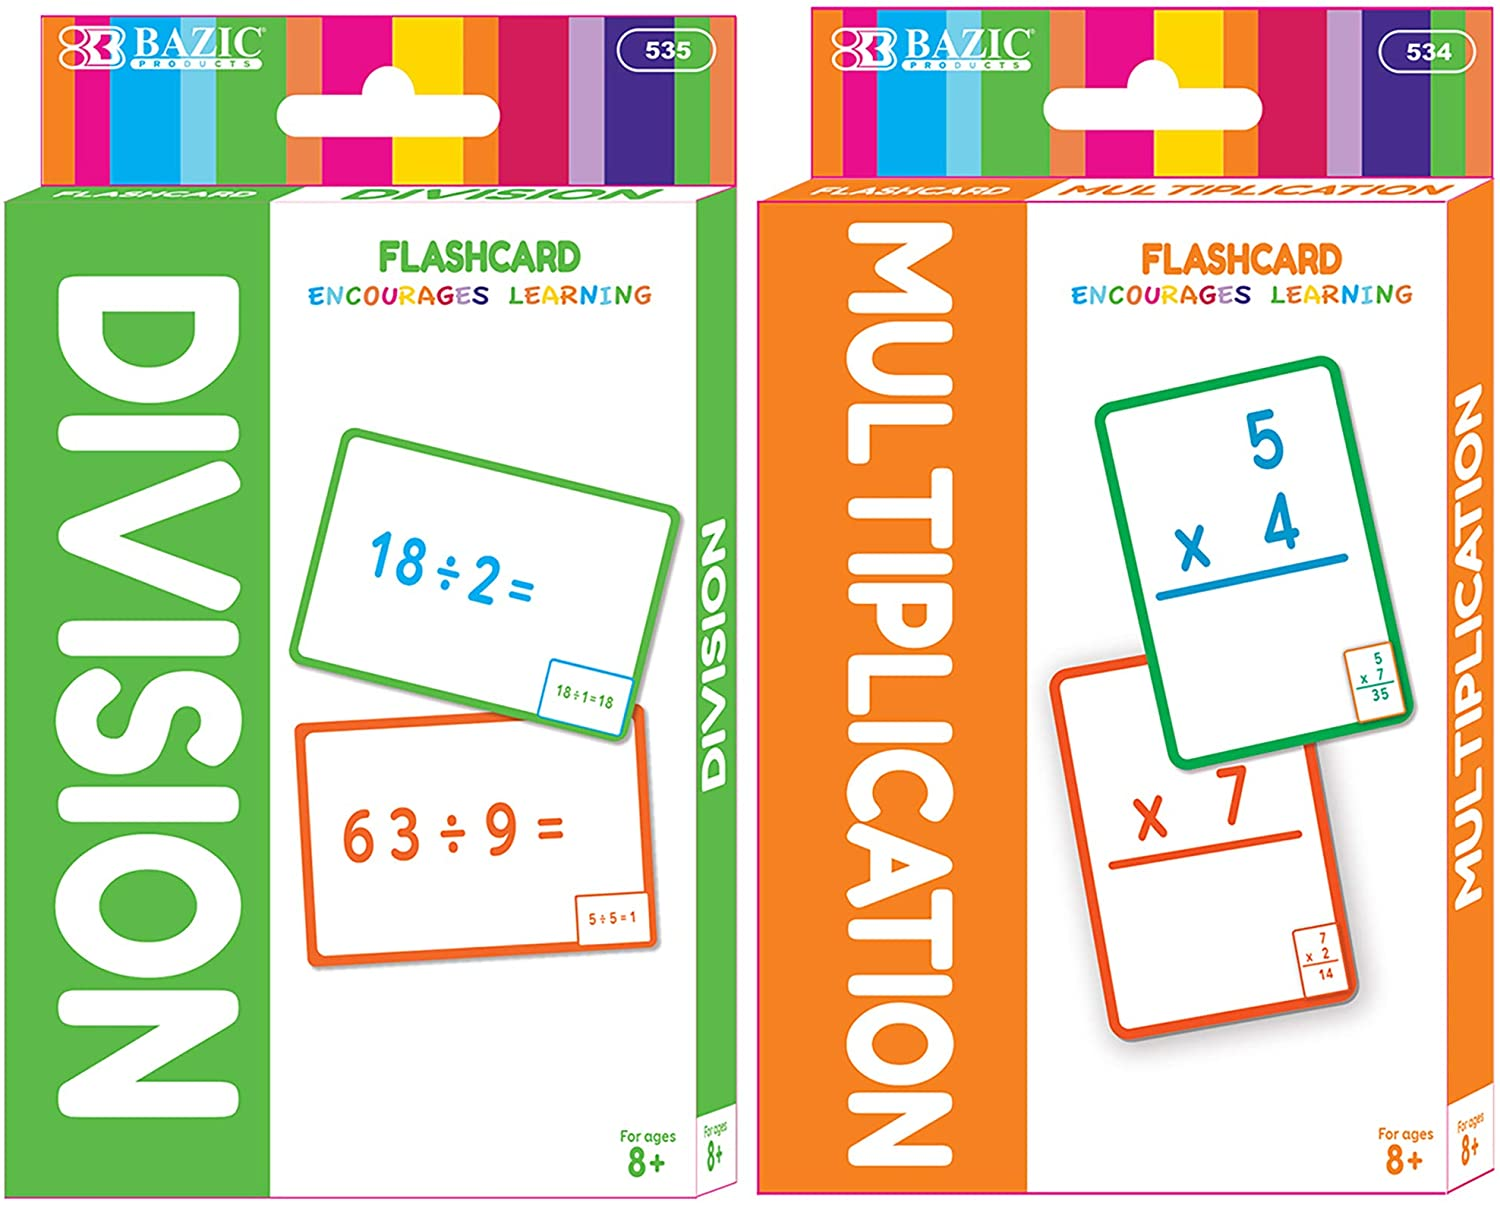 BAZIC Multiplication & Division Flash Cards, Number Math Calculation Card Game Education Training Learning Practice Smart, Great for Kids Activities at Home School Classroom (36/Pack), Set of 2-Pack